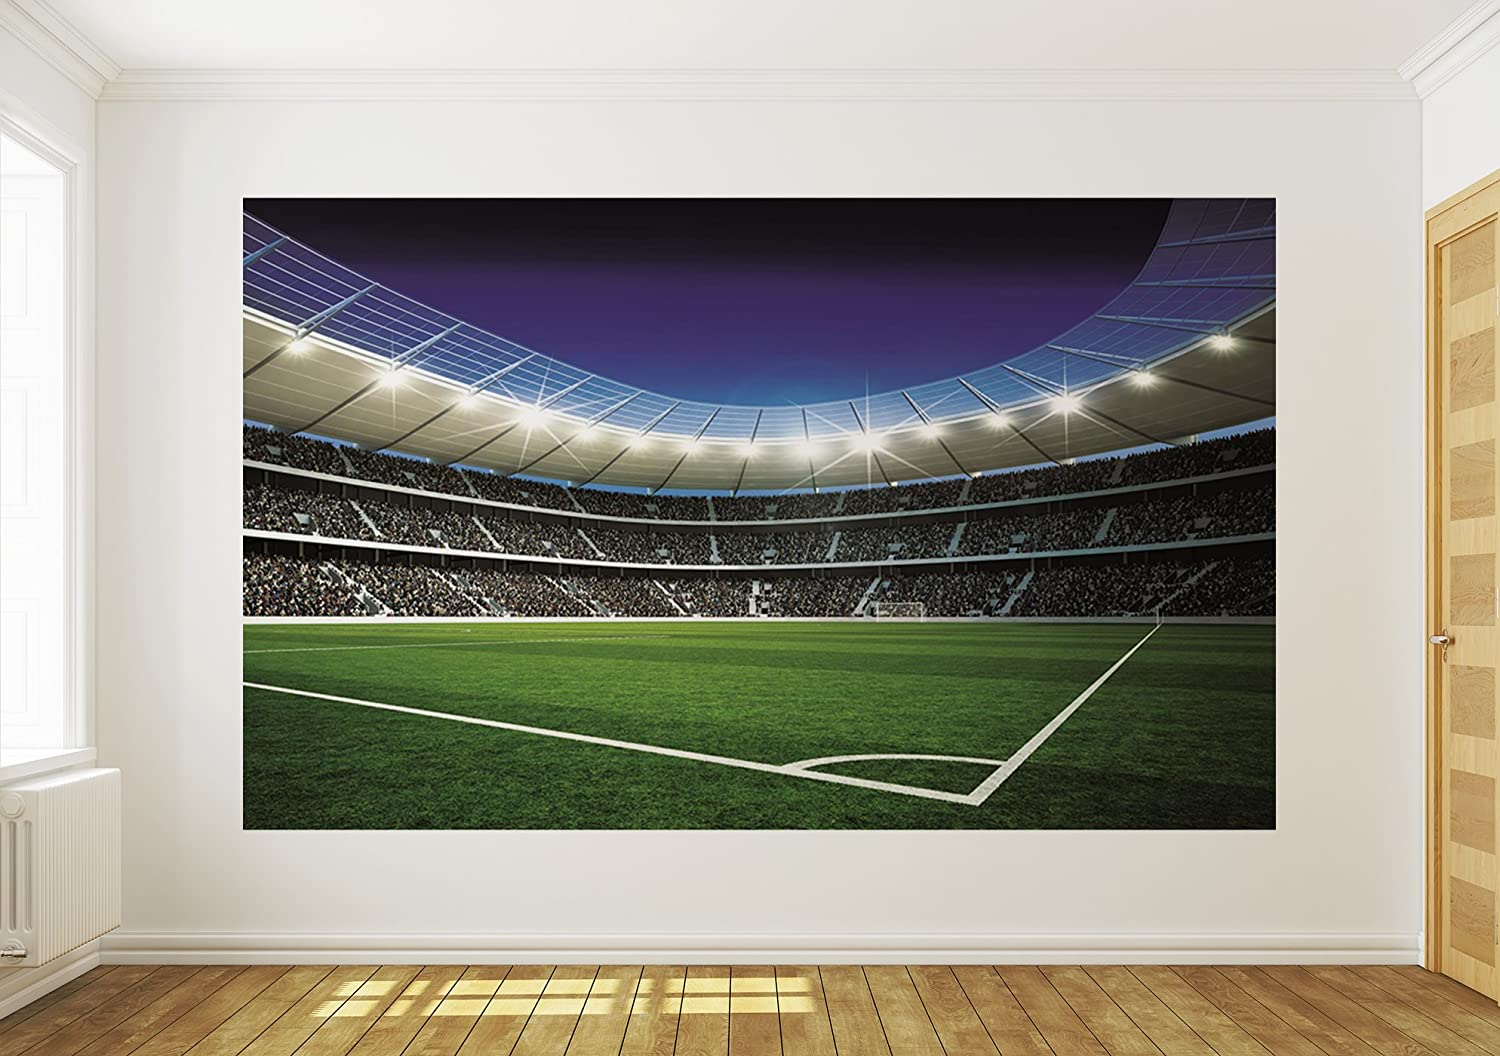 Football stadium wall mural choice image home wall decoration ideas football stadium wall murals home design amazon uk amipublicfo choice image amipublicfo Images